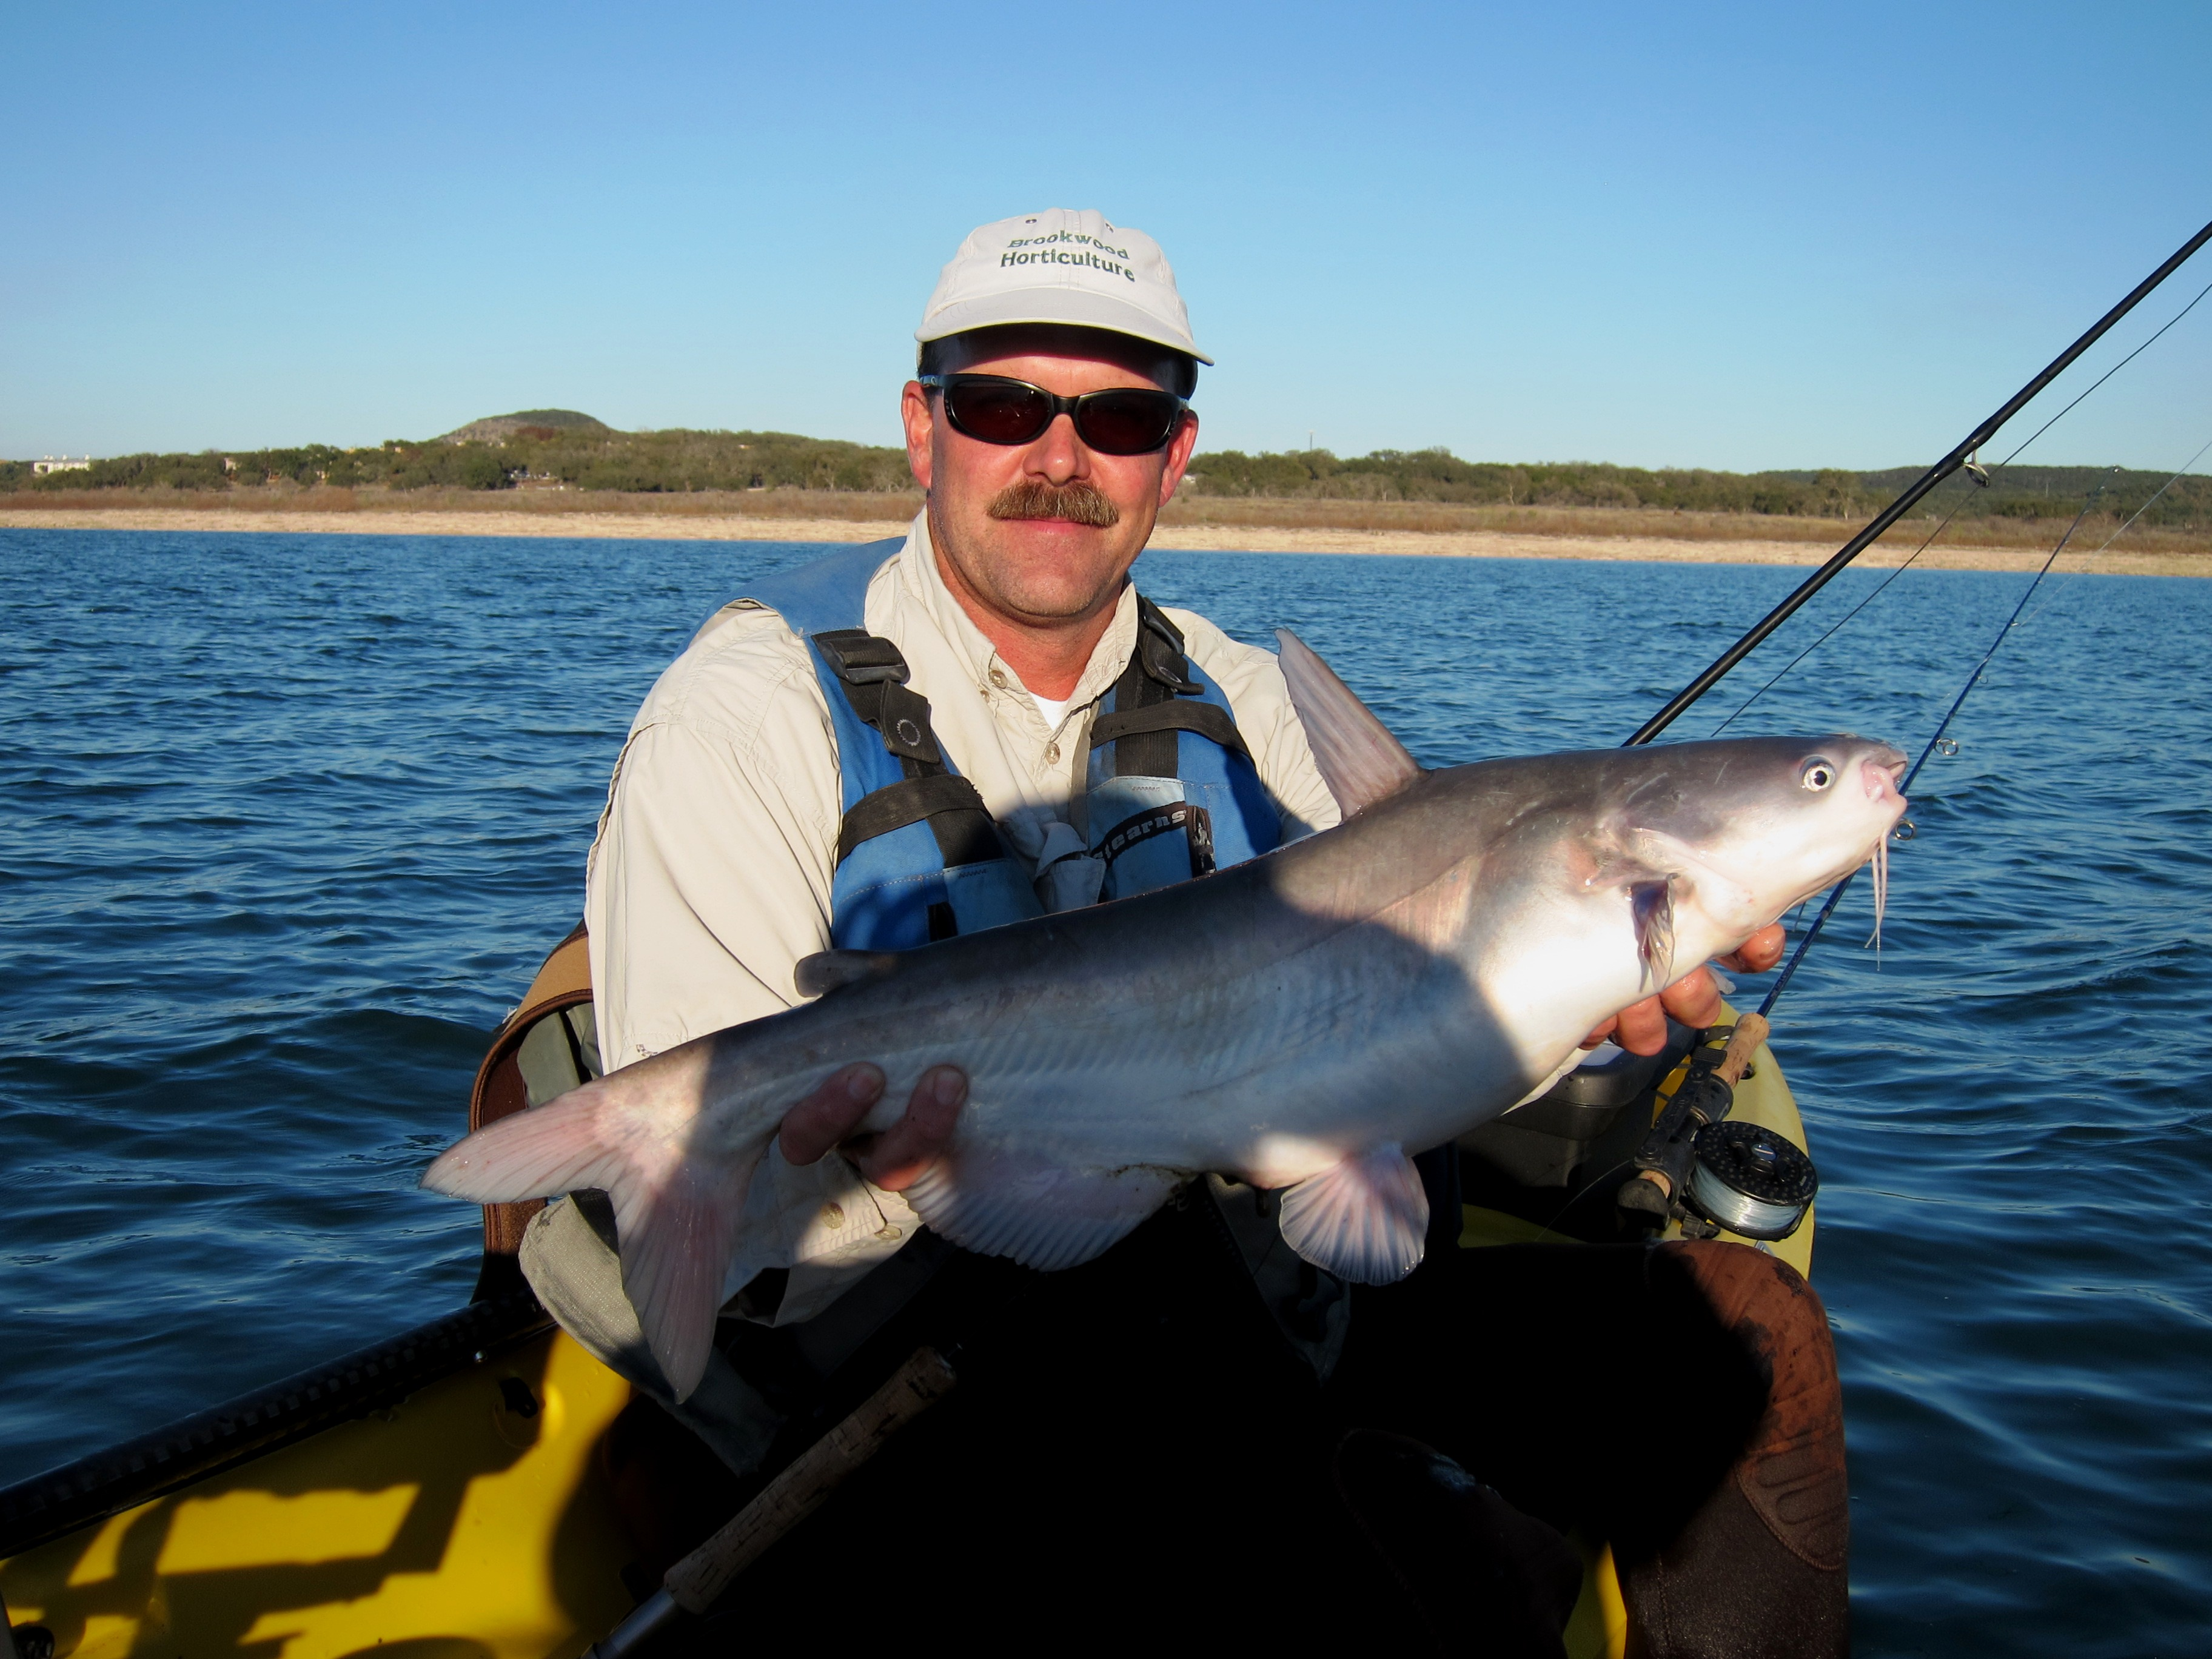 Canyon lake fly fishing report 12 22 11 for Canyon lake fishing spots